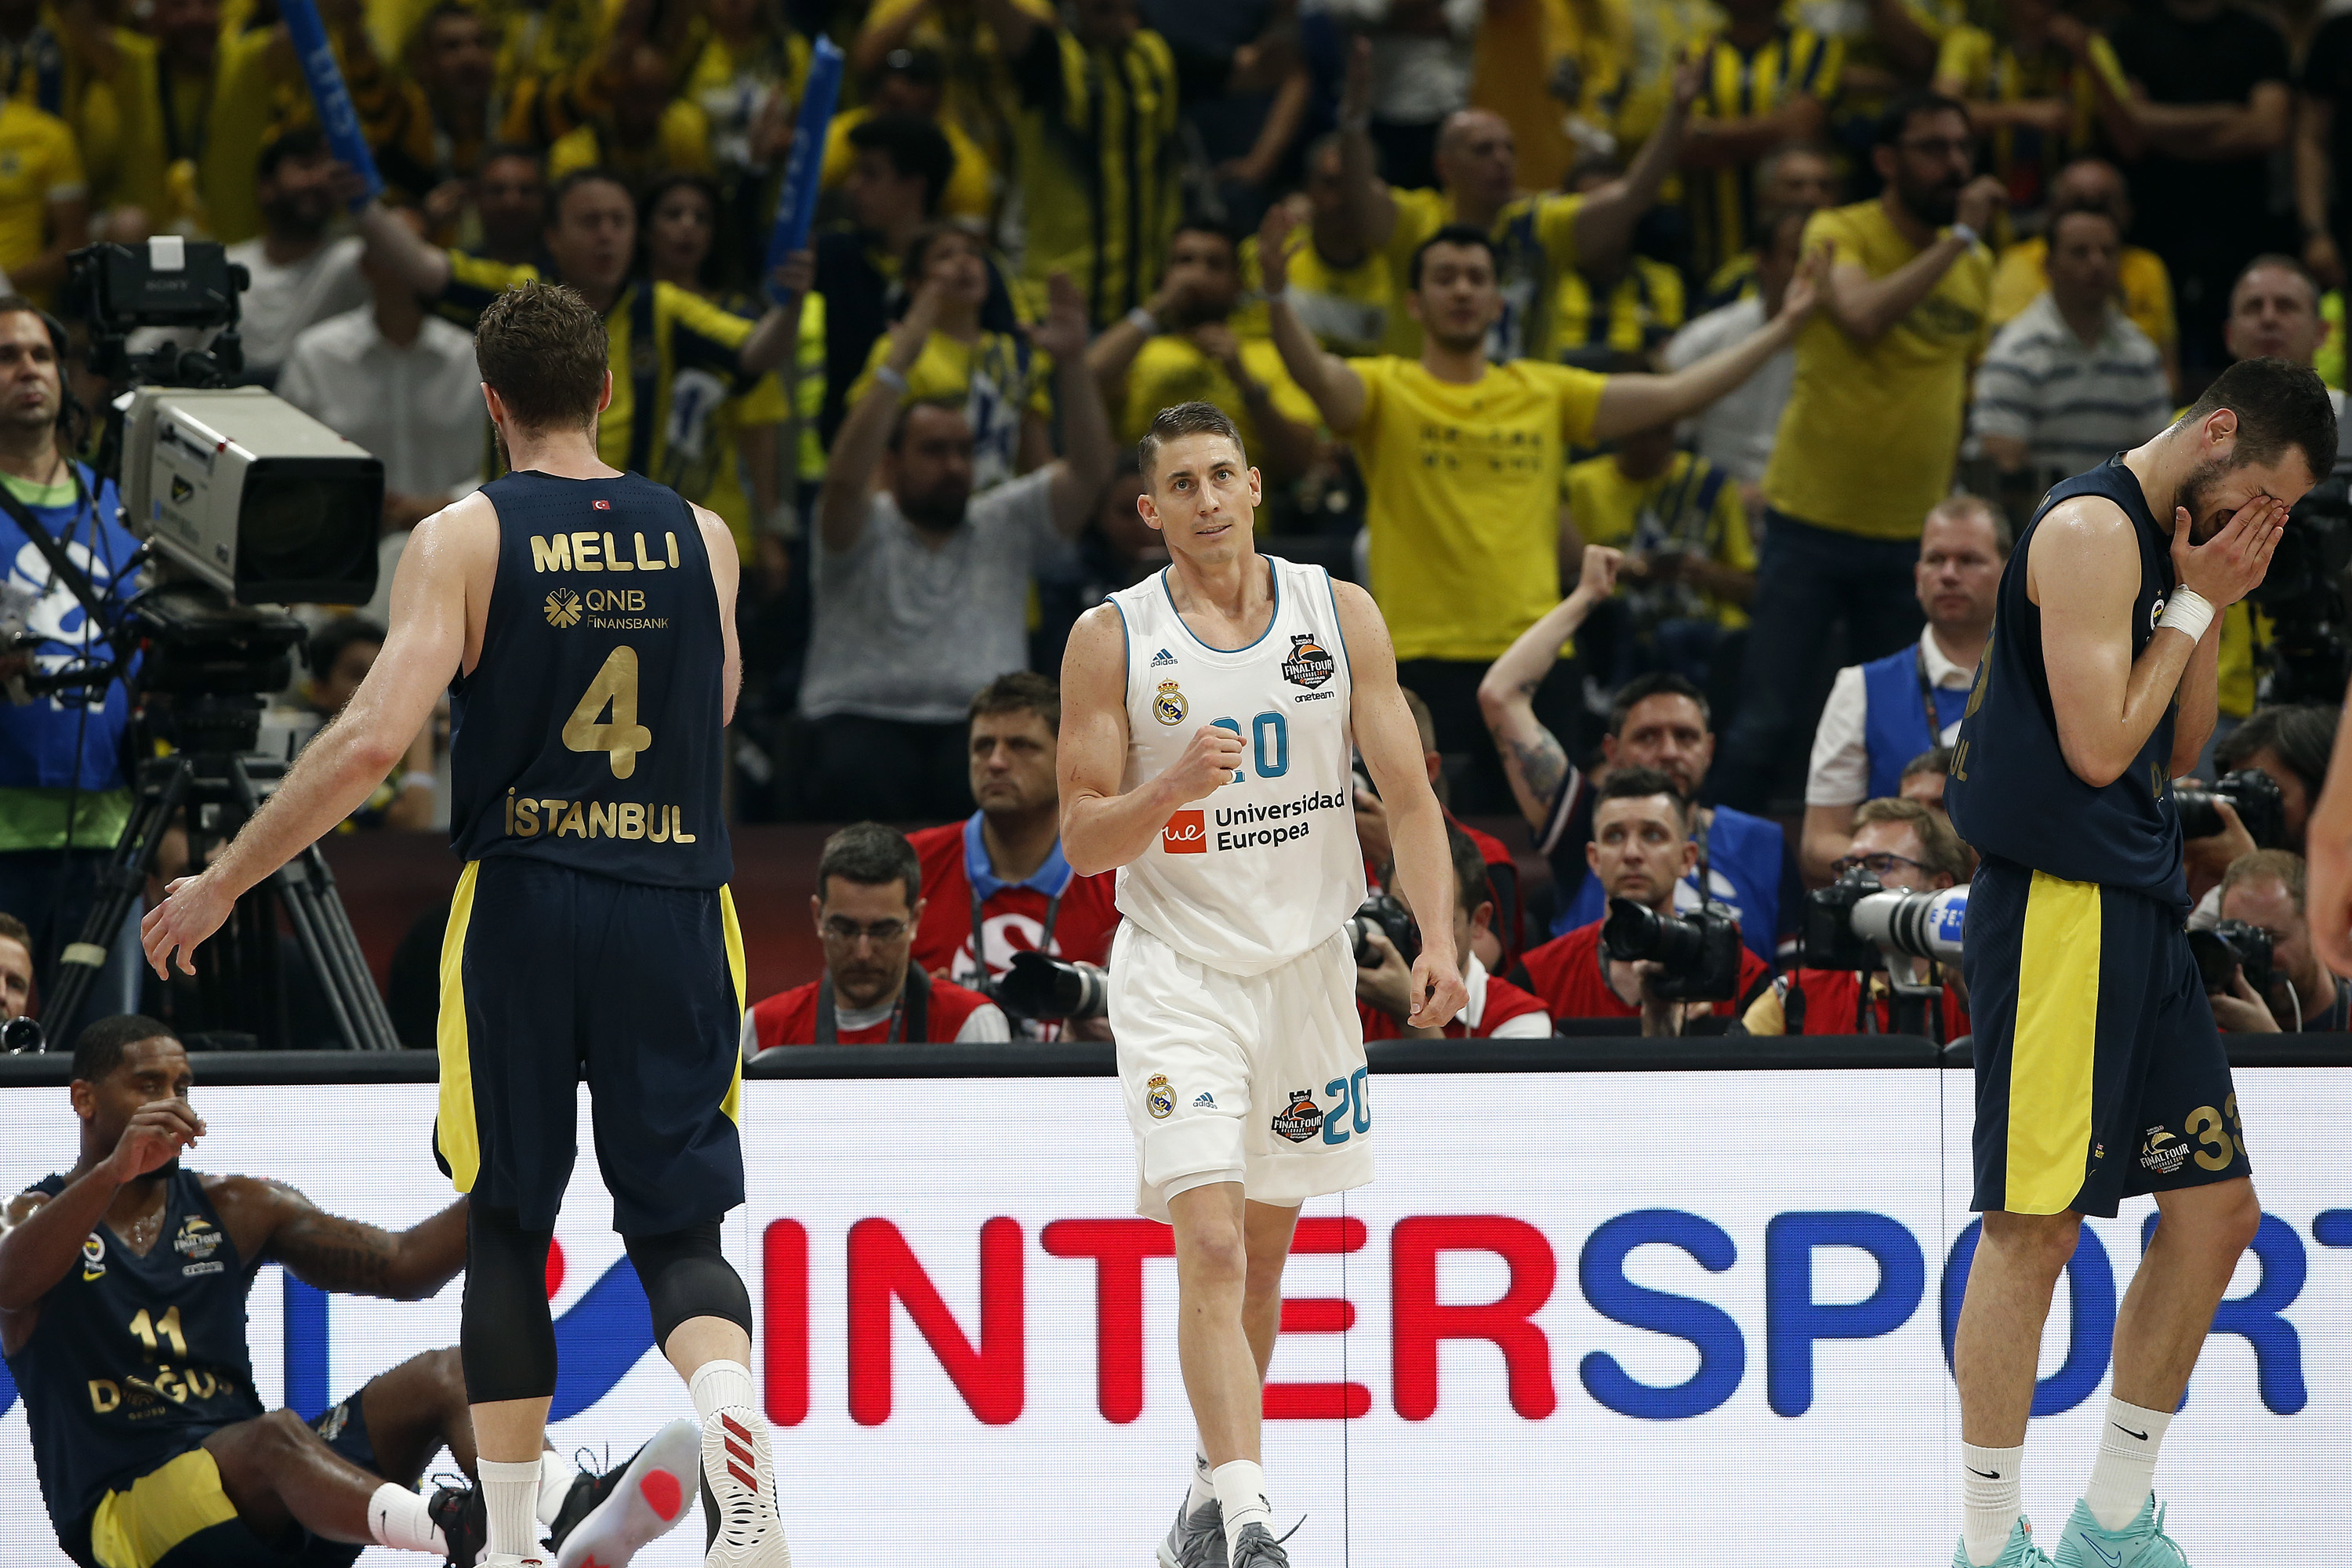 Real Madrid's Jaycee Carroll gestures after a duel with Fenerbahce's Brad Wanamaker during their Final Four Euroleague final basketball match between Real Madrid and Fenerbahce in Belgrade, Serbia, Sunday, May 20, 2018. (AP Photo/Darko Vojinovic)